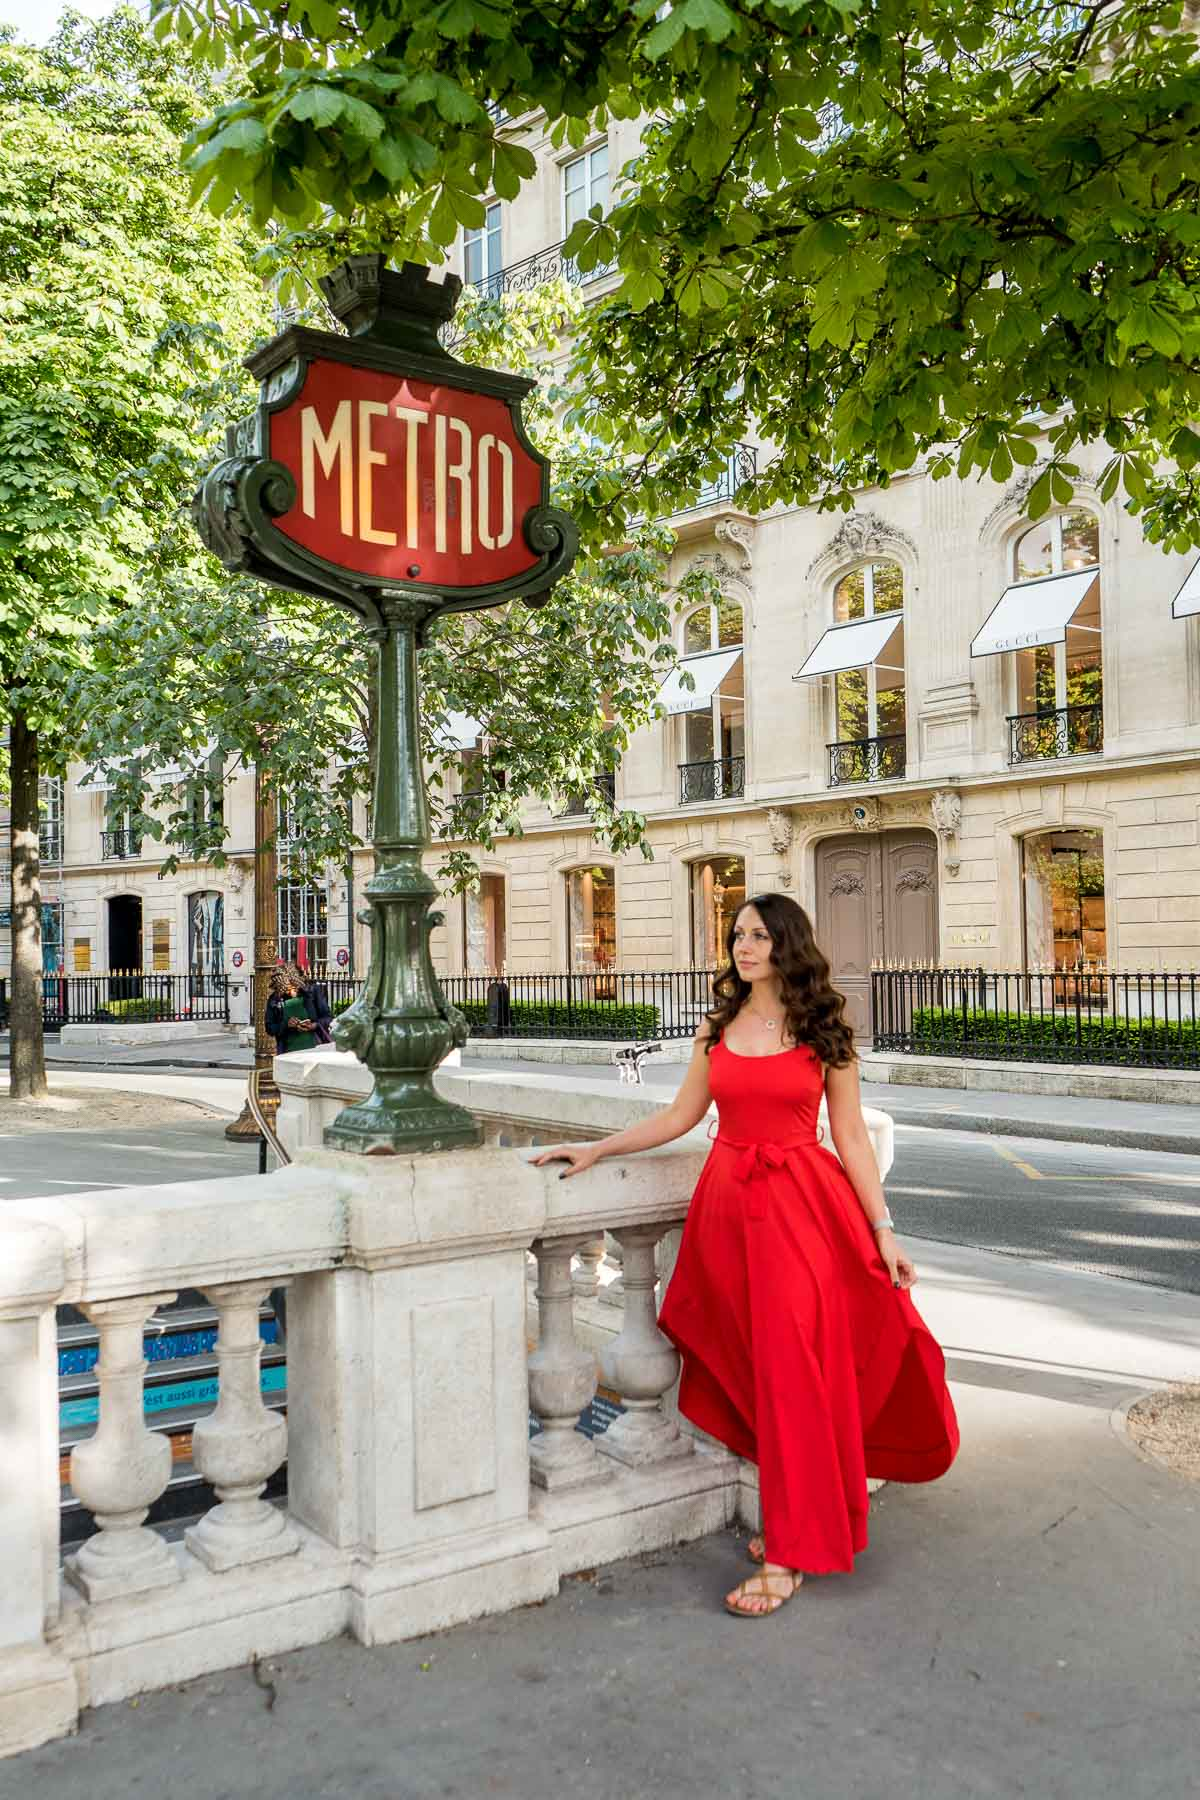 Girl in a red dress standing at a metro station sign in Paris, France